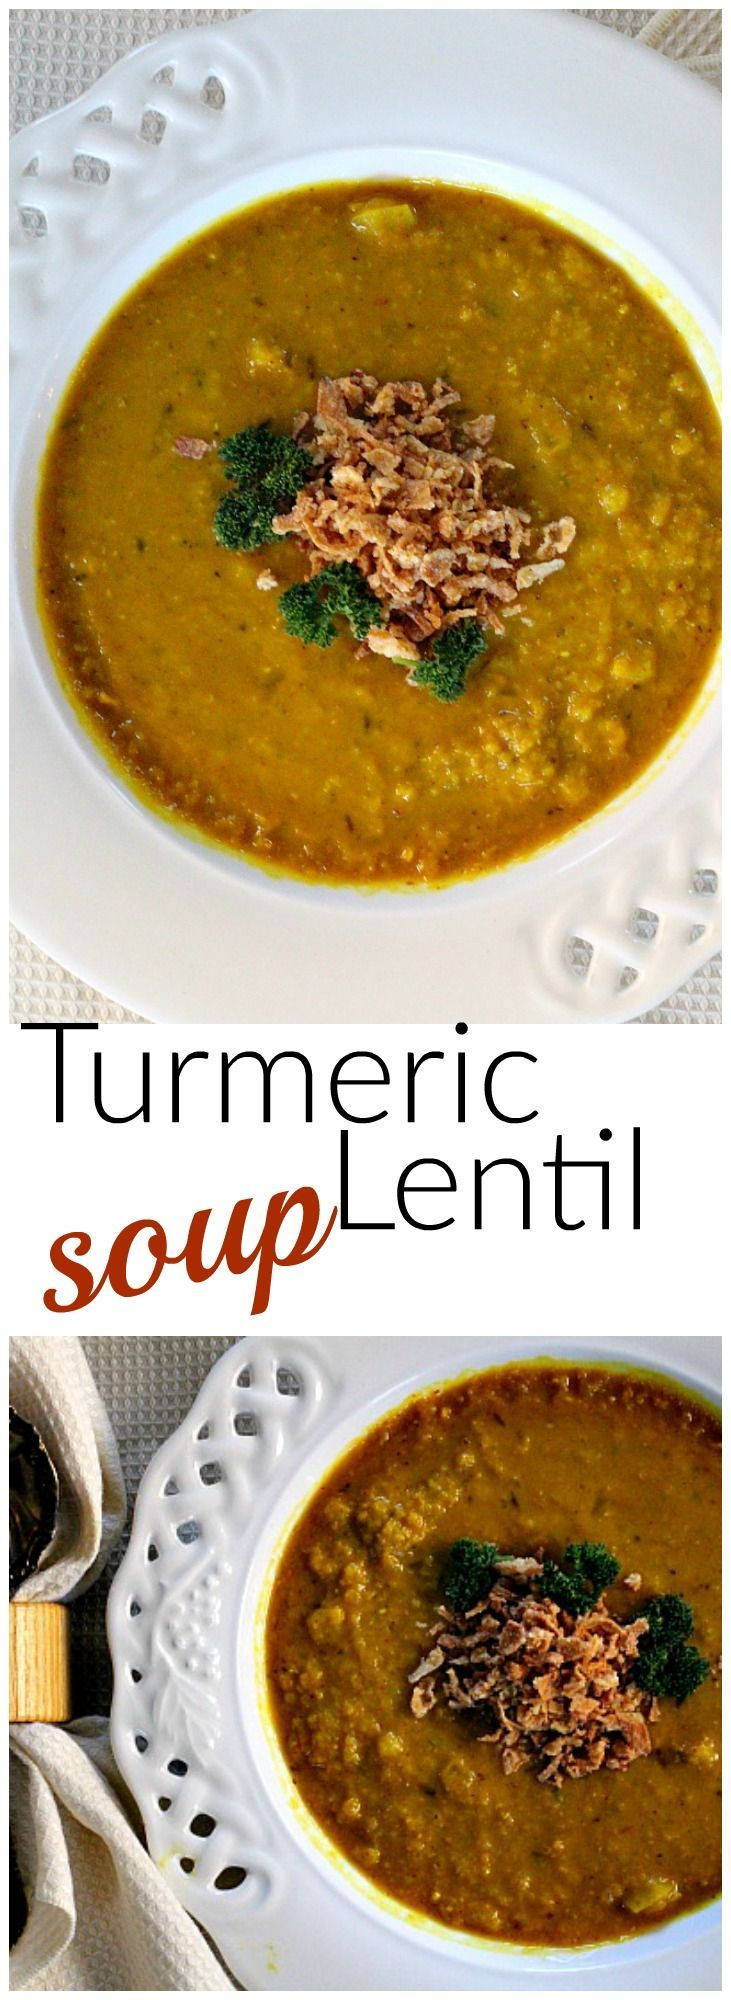 Healthy Turmeric and Lentil Soup Recipe. Easy and delicious dinner recipe idea. With carrots, celery and exciting exotic spices, this is one of our favorite detox soups.  Enjoy the benefits of healthy turmeric recipes. via /lannisam/